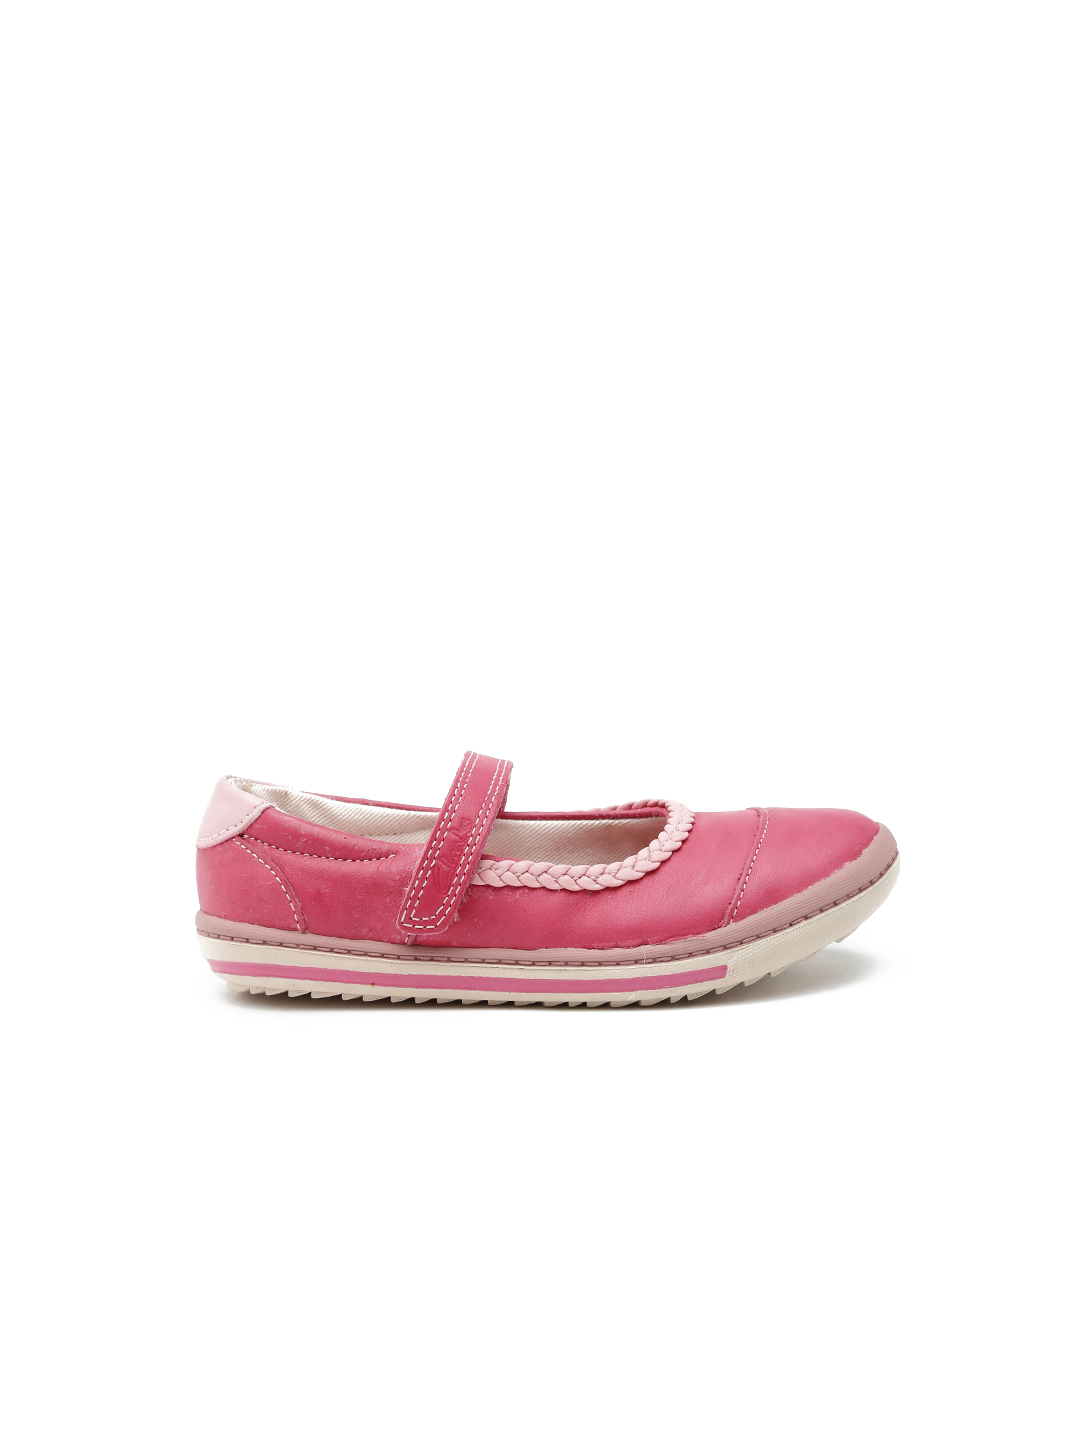 Clarks Girls Pink Leather Mary Janes